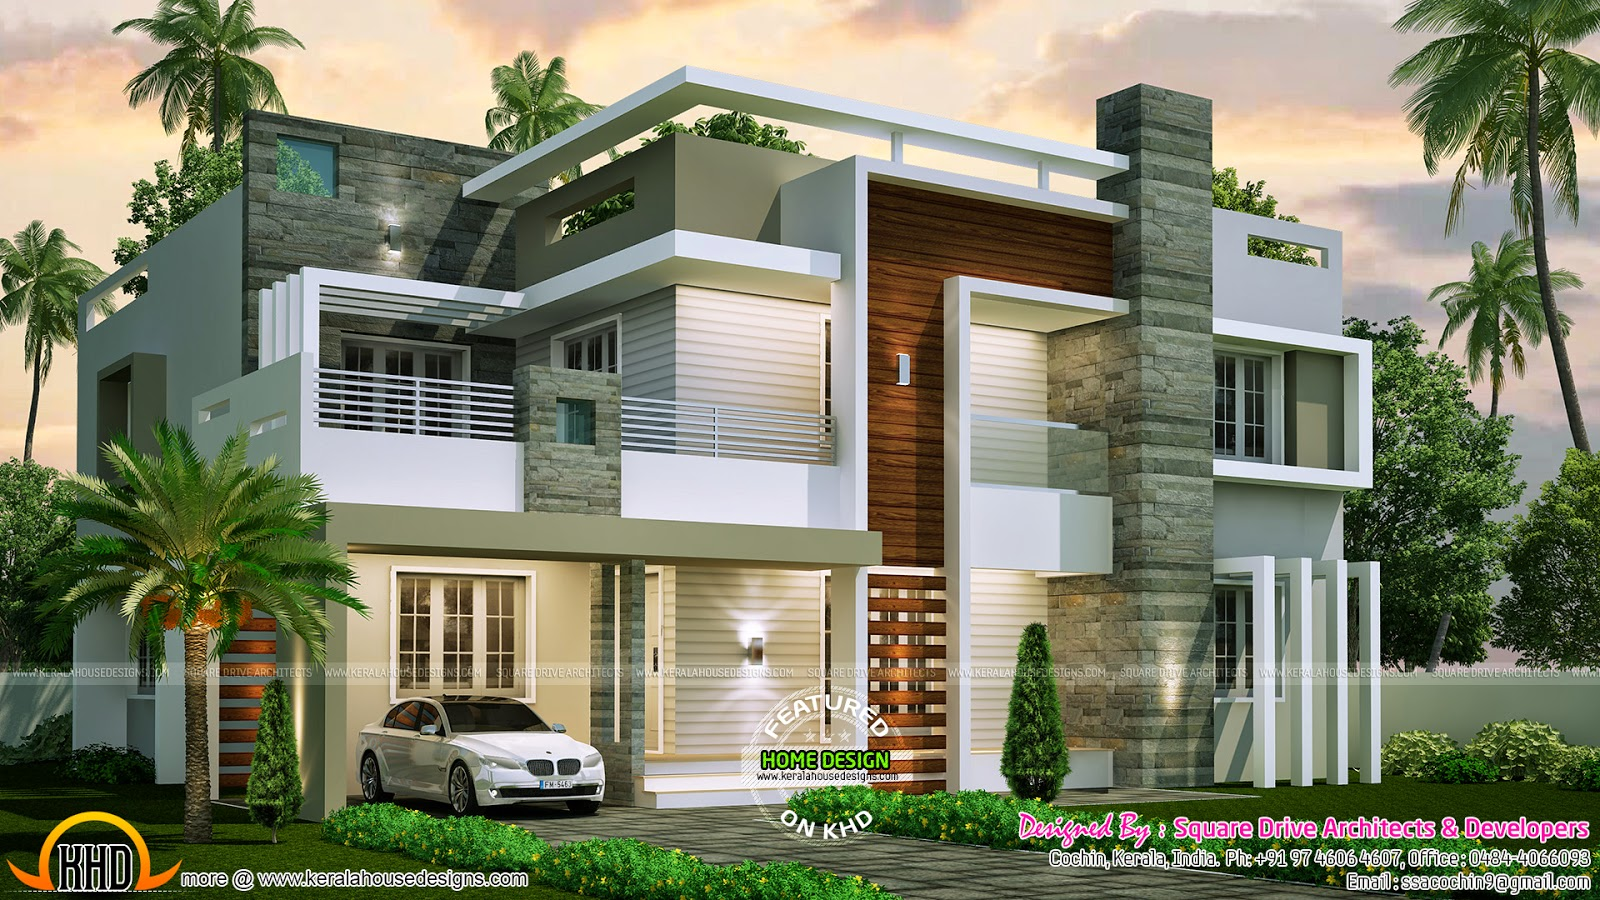 4 bedroom contemporary home design kerala home design for Modern home design plans